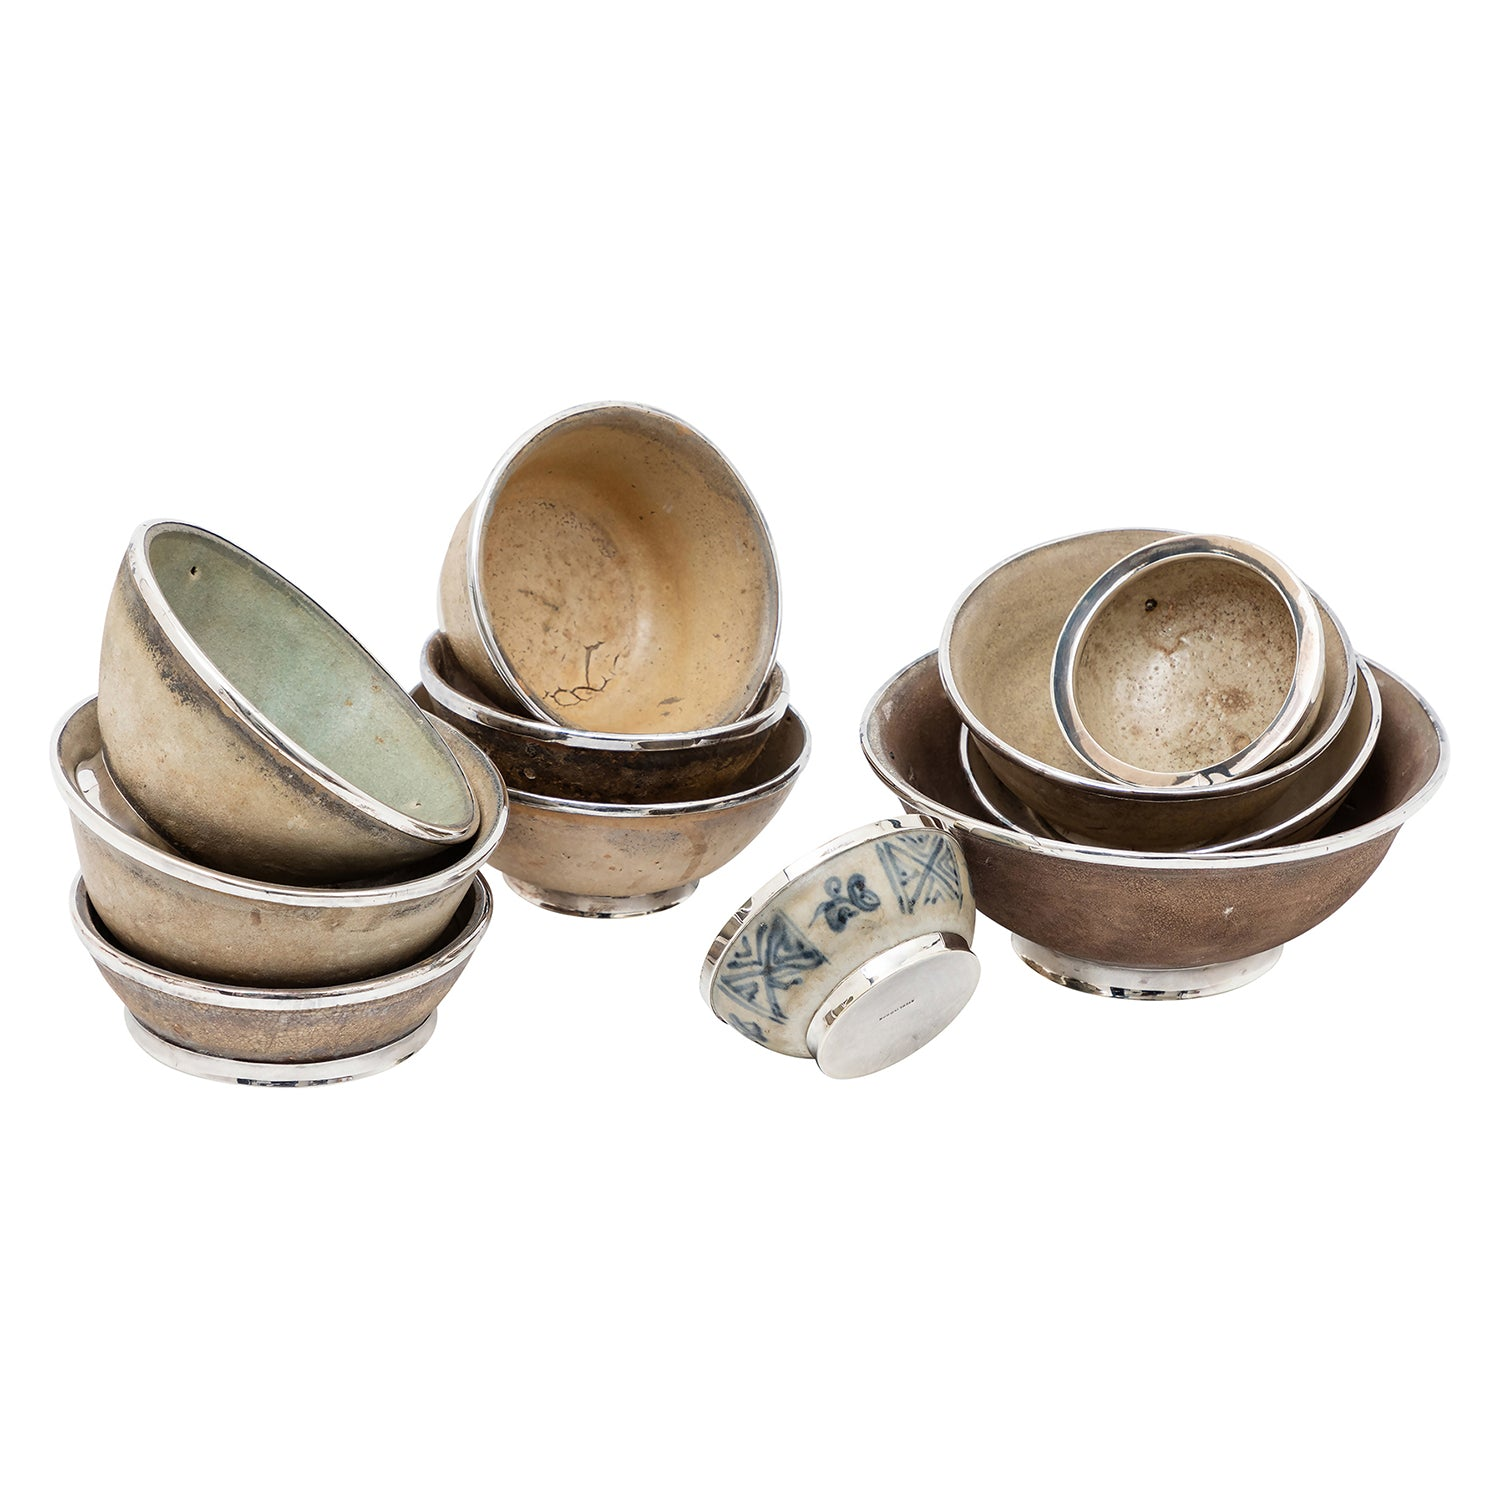 Ming Dynasty Shipwreck Bowls (Set of 11 Pieces)